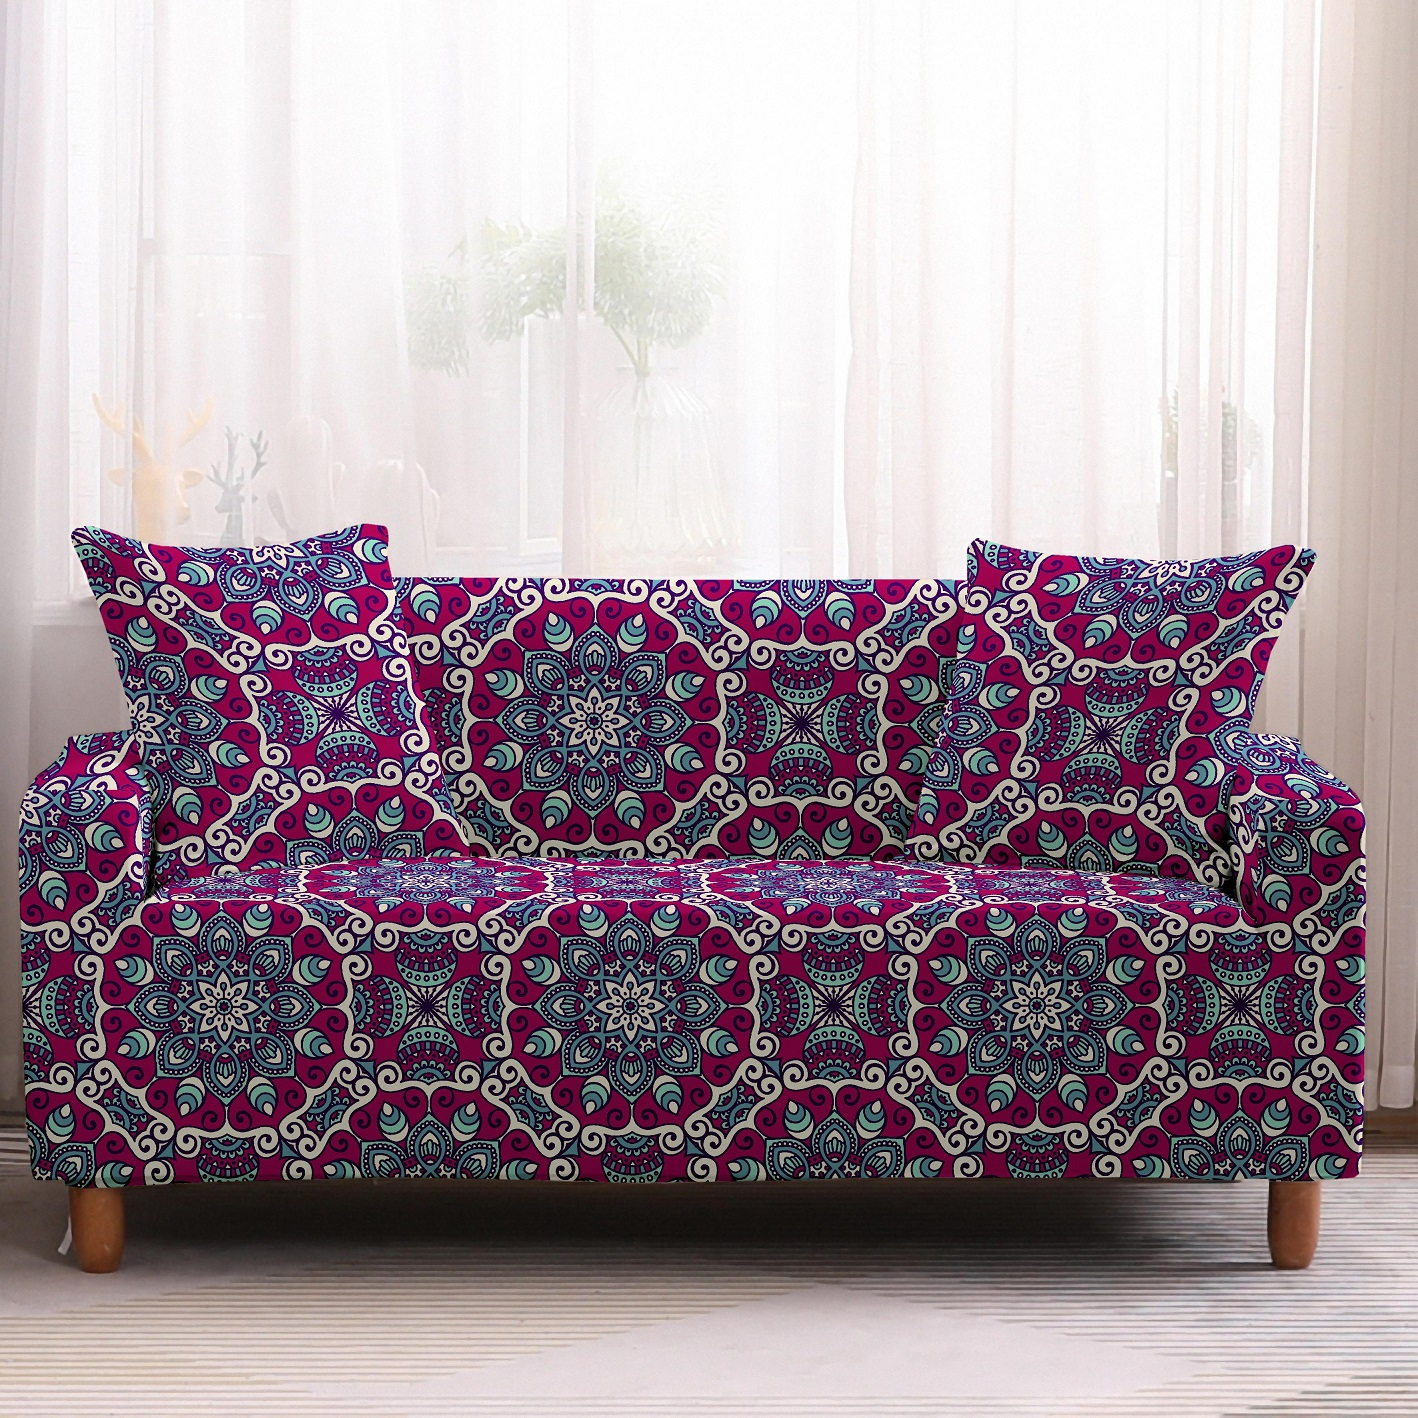 Bohemia Slipcovers Sofa Cover in Mandala Pattern to Protect Living Room Furniture from Stains and Dust 8